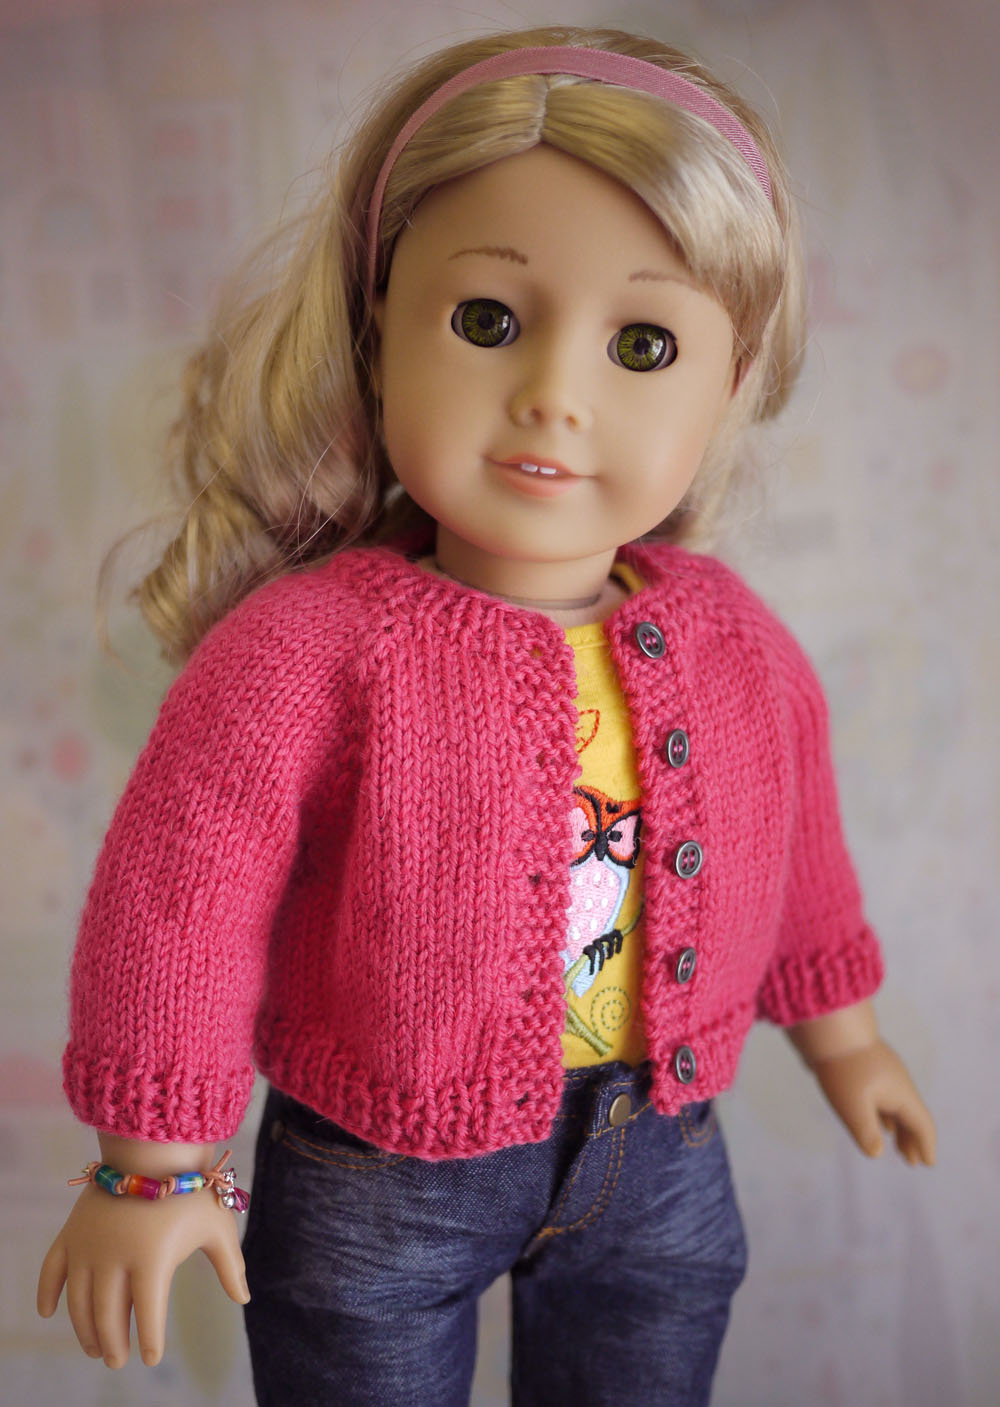 Free Knitting Patterns Bags : American Girl Dolls Cindy Rice Designs